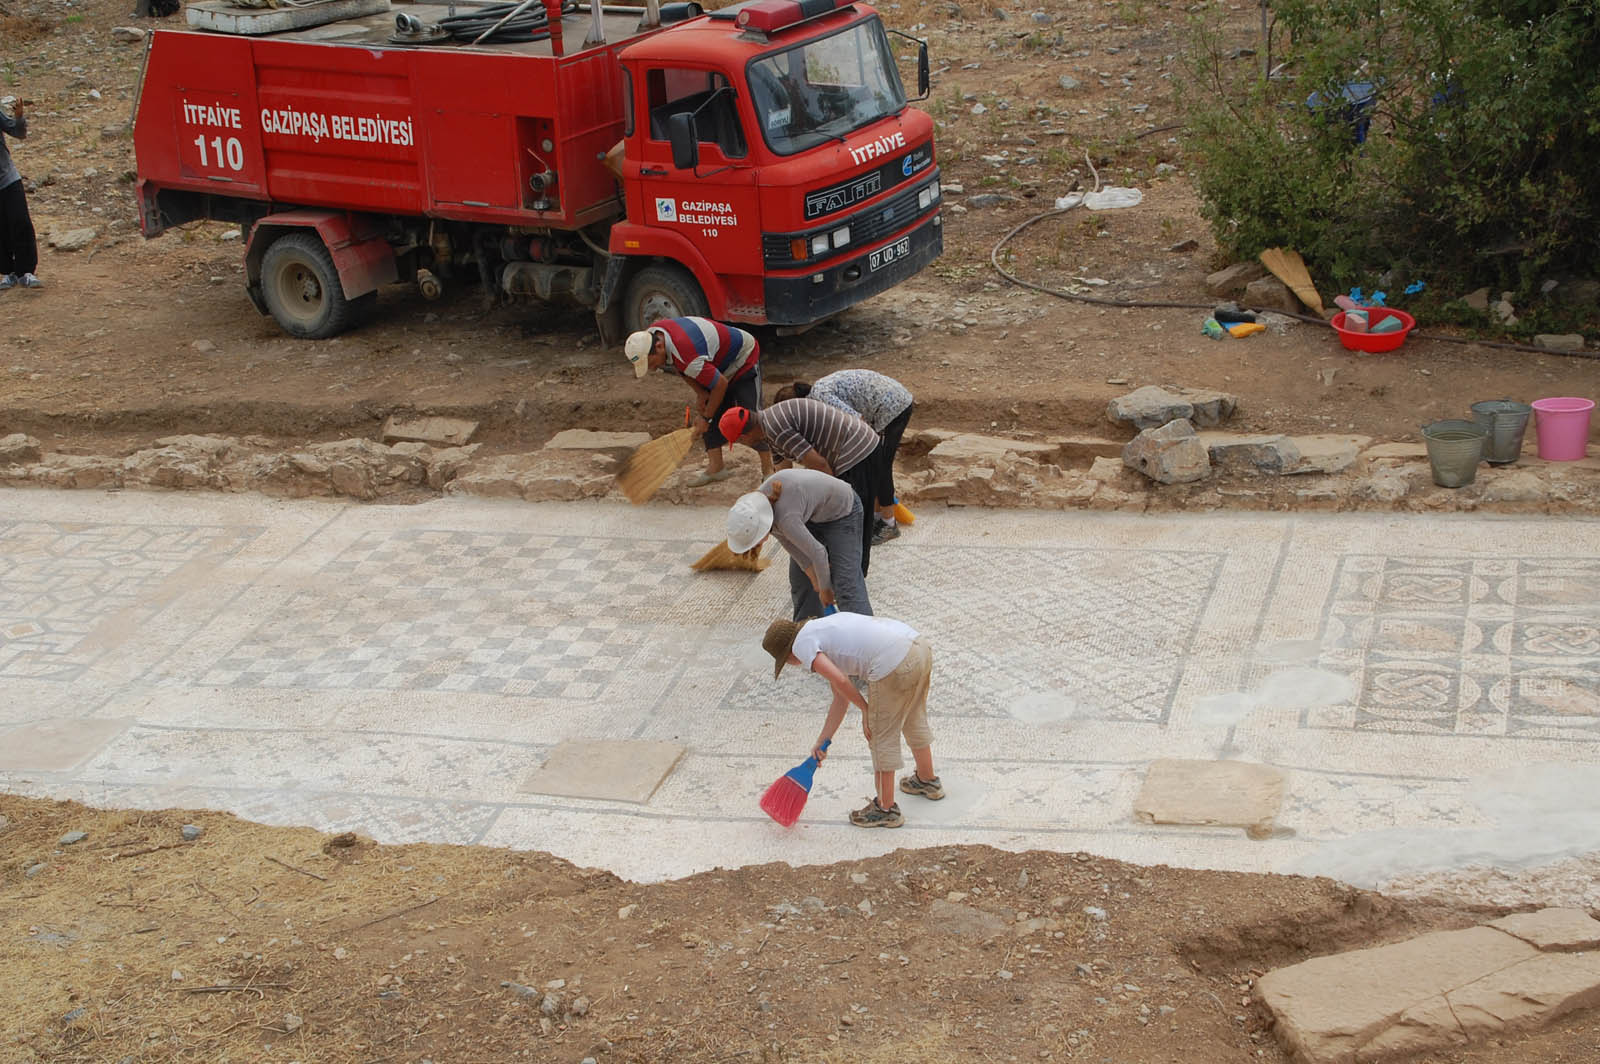 Researchers, students and workers spent two months unearthing and cleaning the mosaic this summer. Watch a video featuring the project at http://www.youtube.com/watch?v=3E8FgKVR7ow.